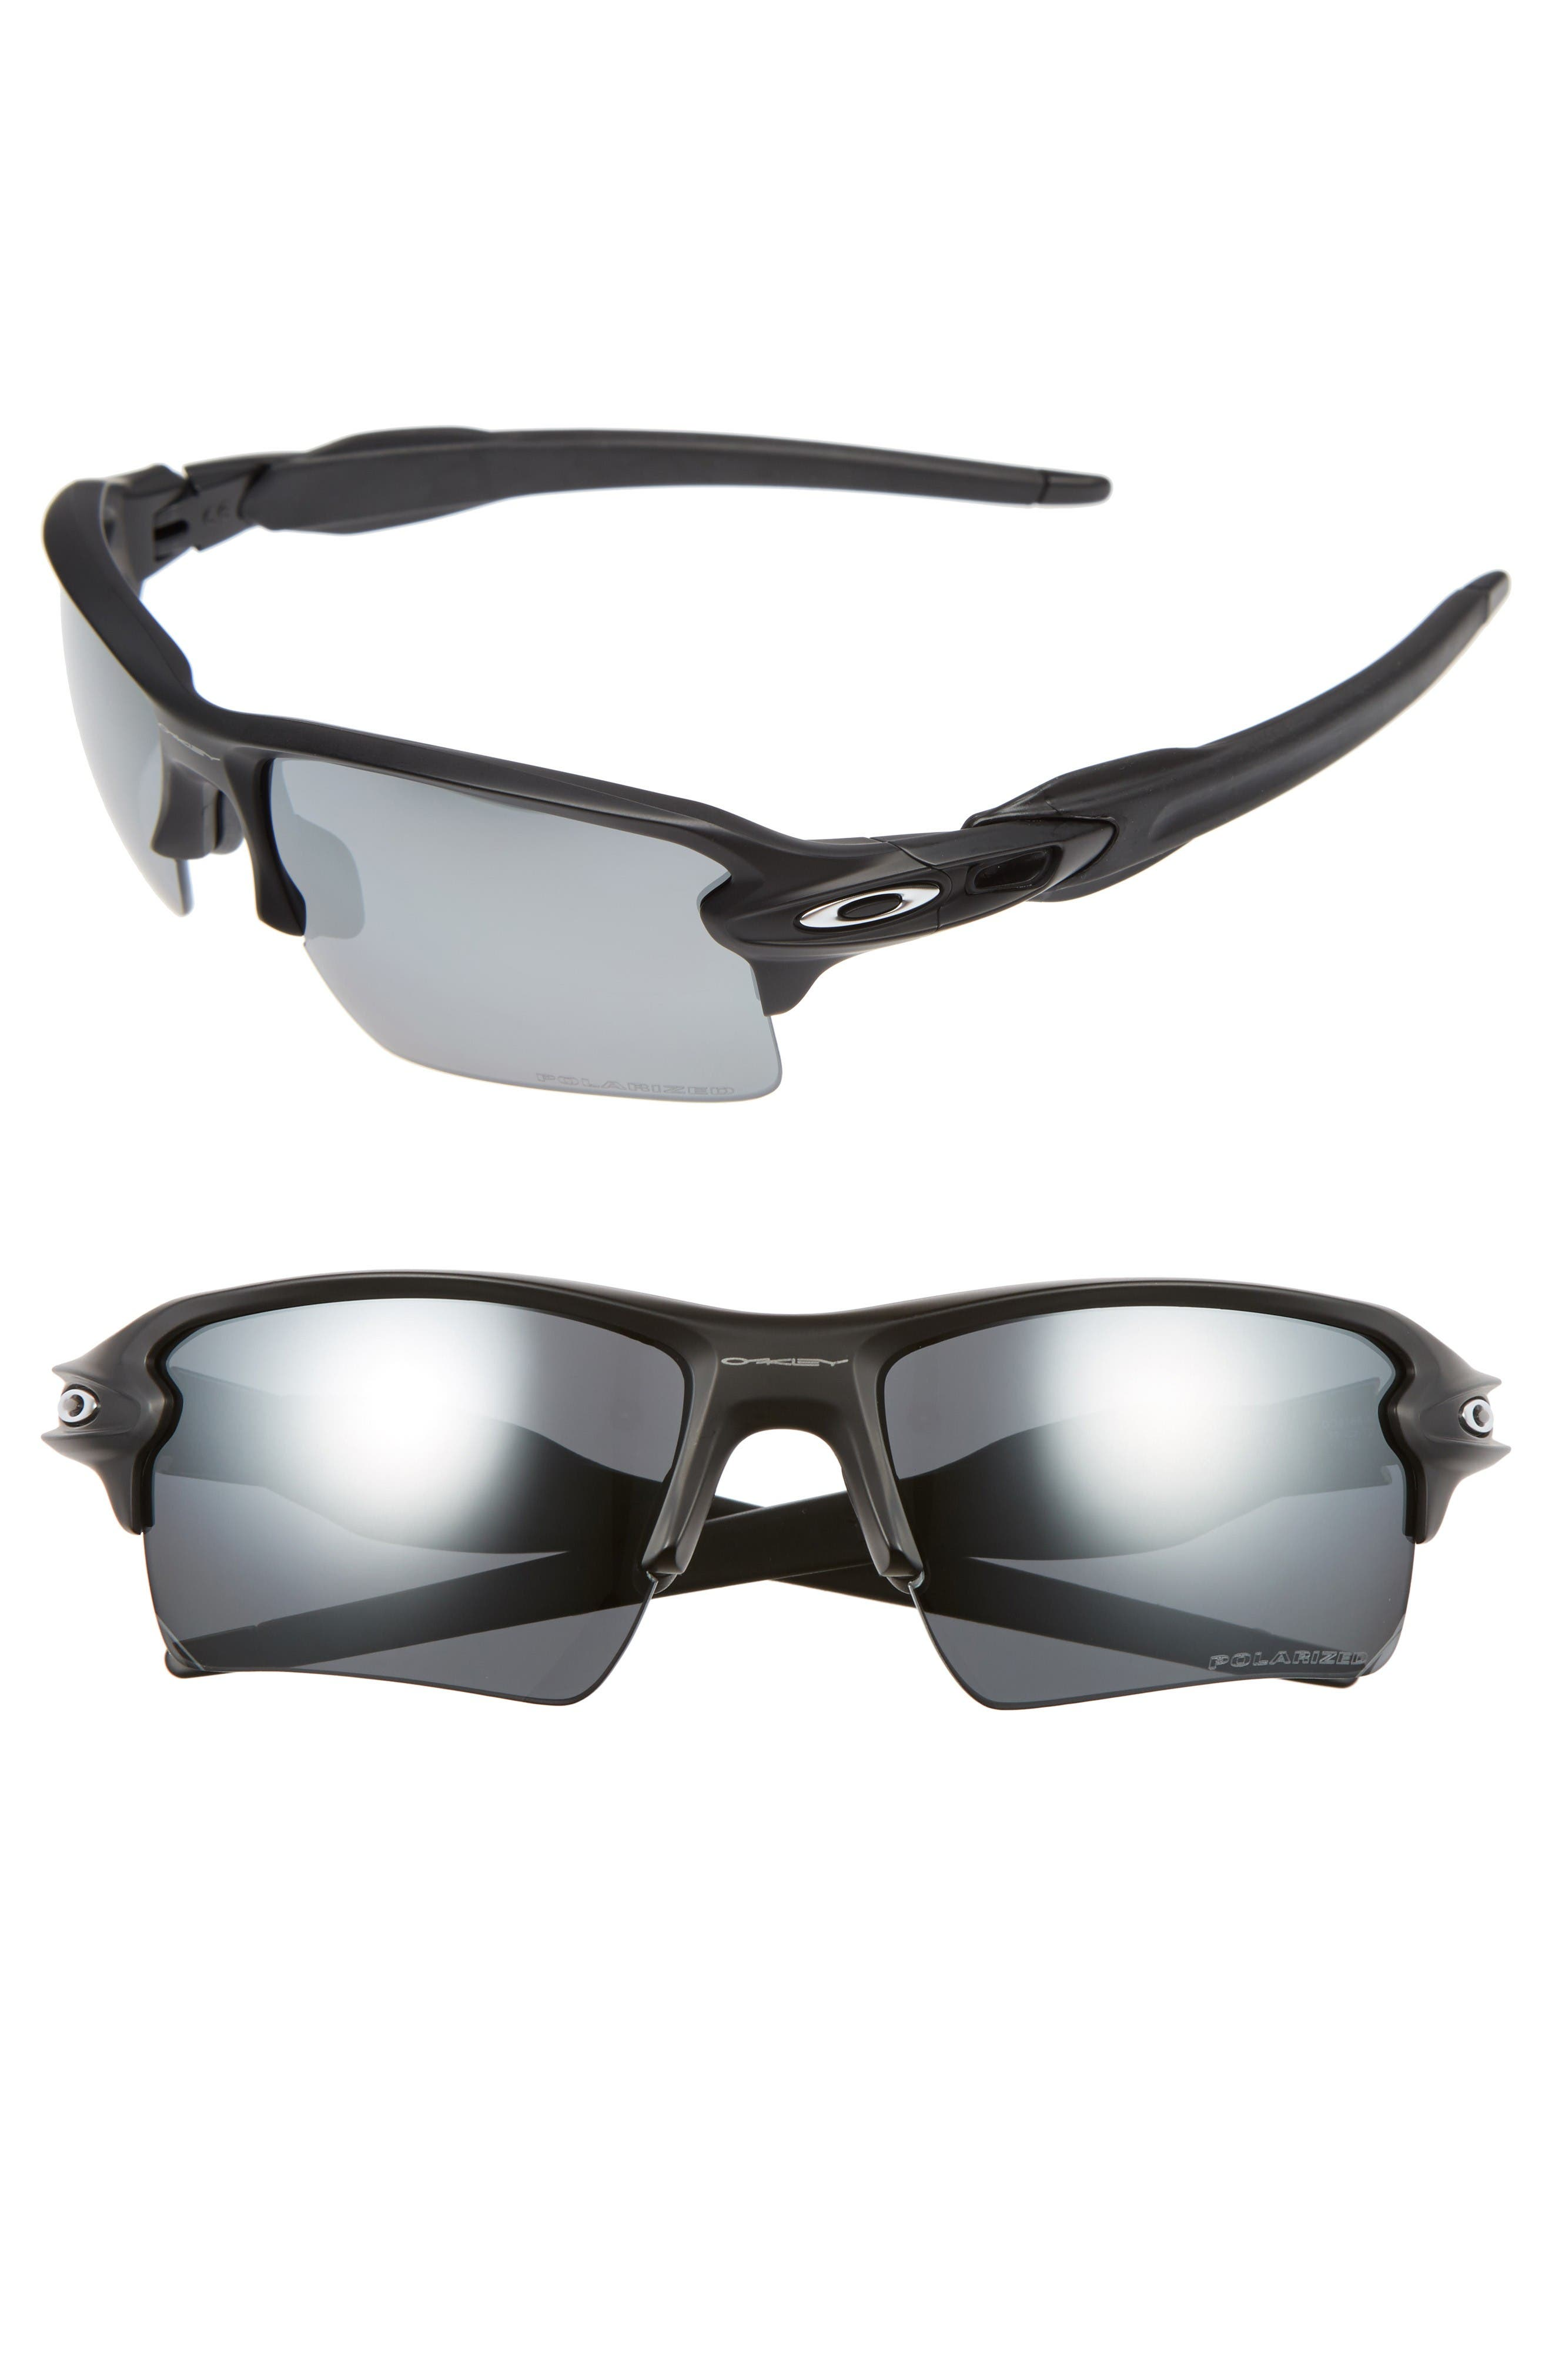 Oakley Flak 2.0 XL 59mm Polarized Sunglasses